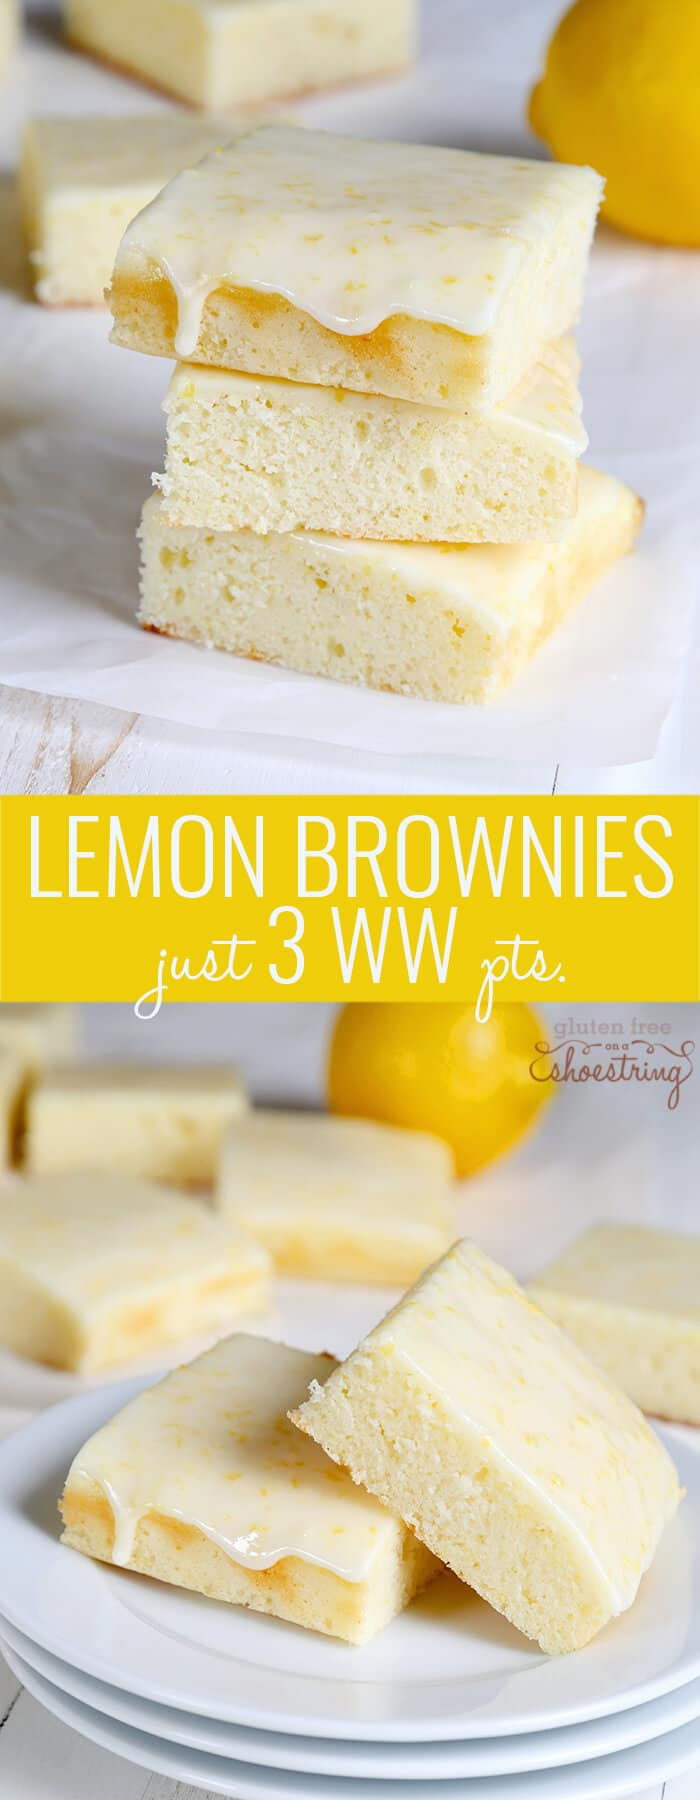 Lemon brownies on white paper and on other white surface